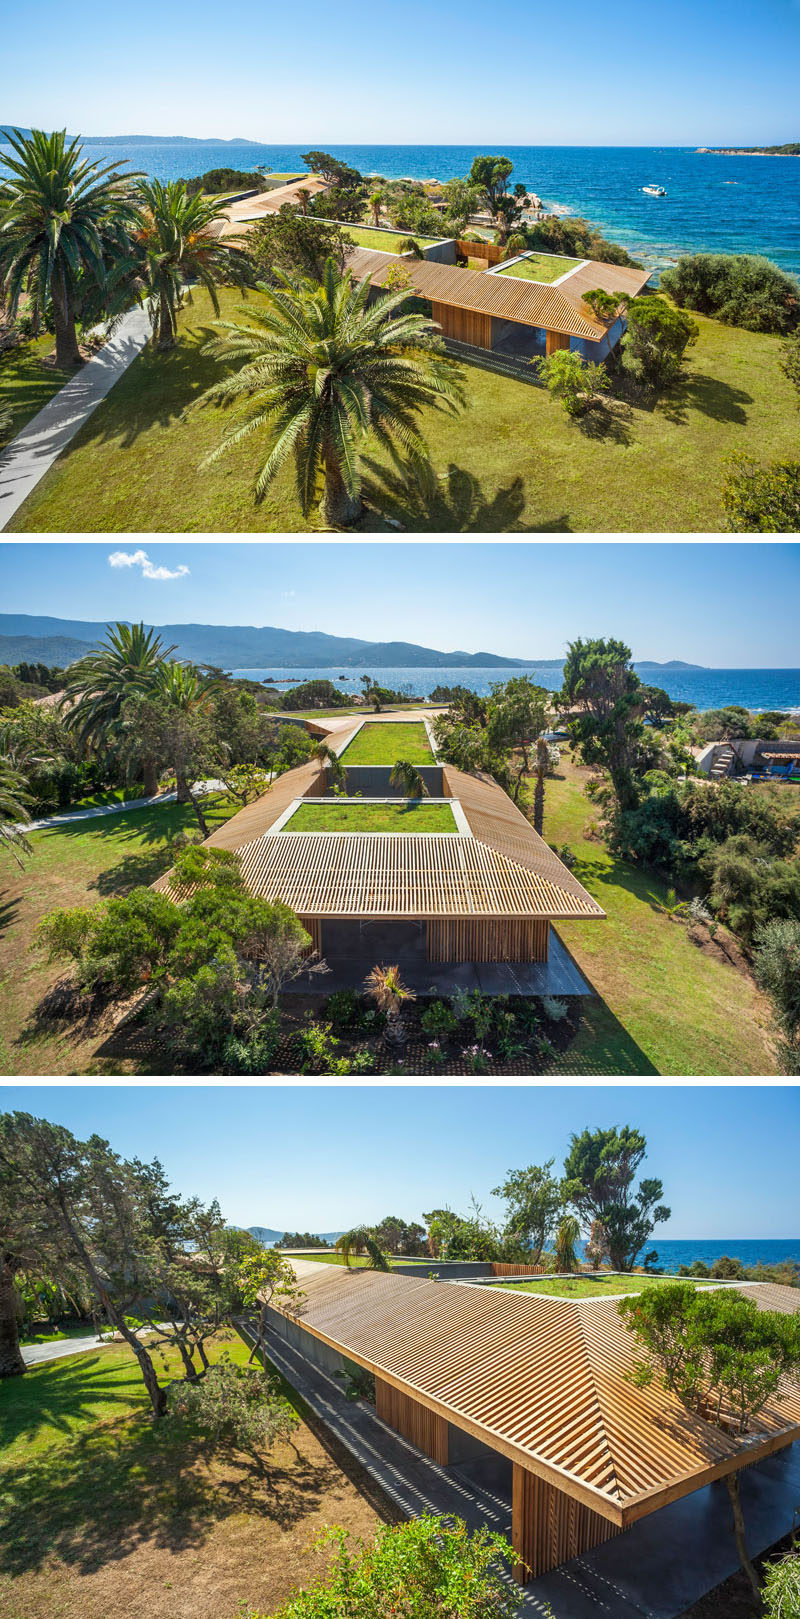 The design of this modern villa follows the natural curve of the peninsula and is broken up into four different sections.